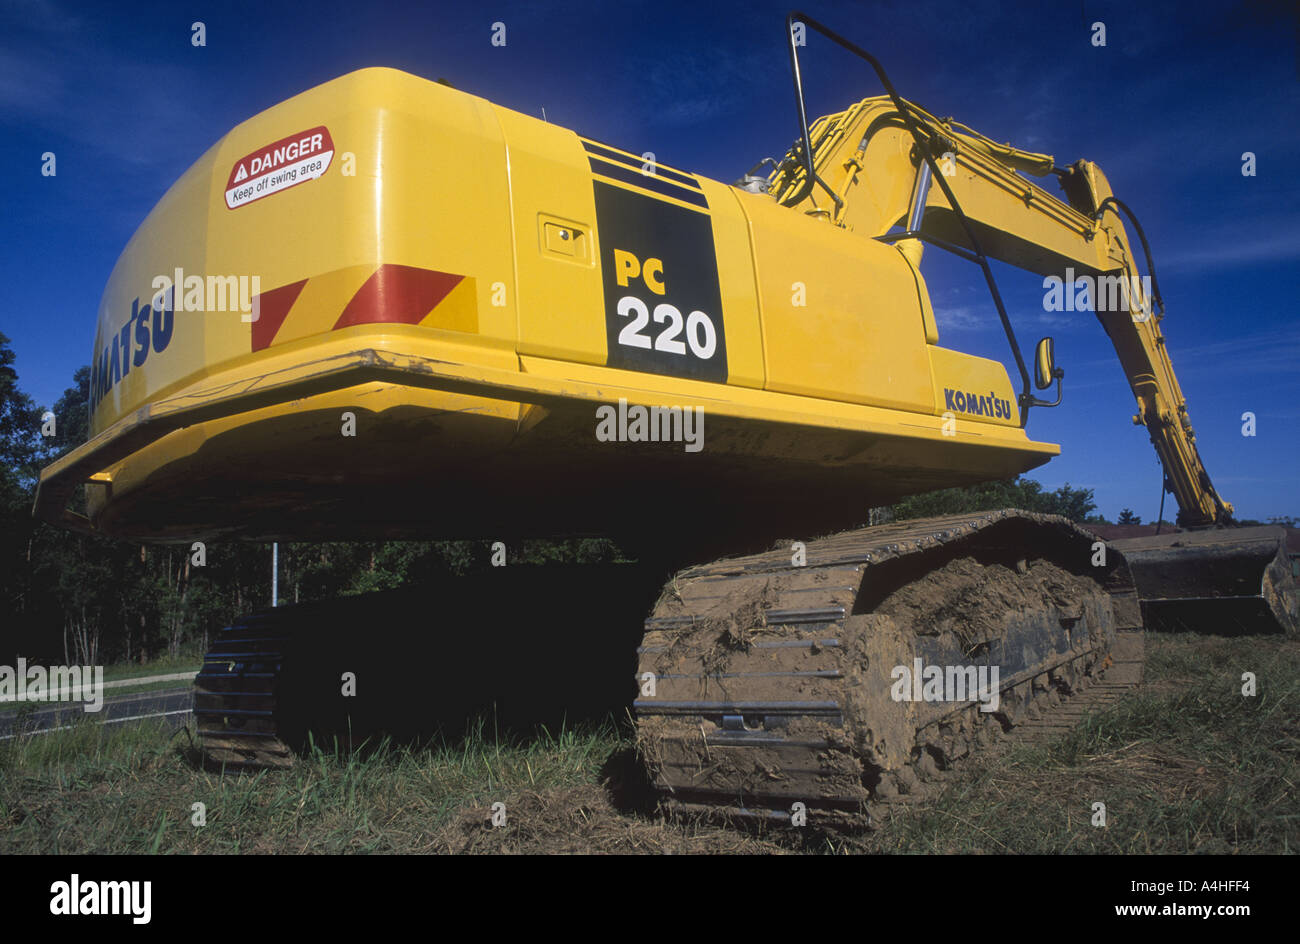 komatsu-excavator-pc-220-showing-body-and-tracks-blue-sky-background-A4HFF4.jpg